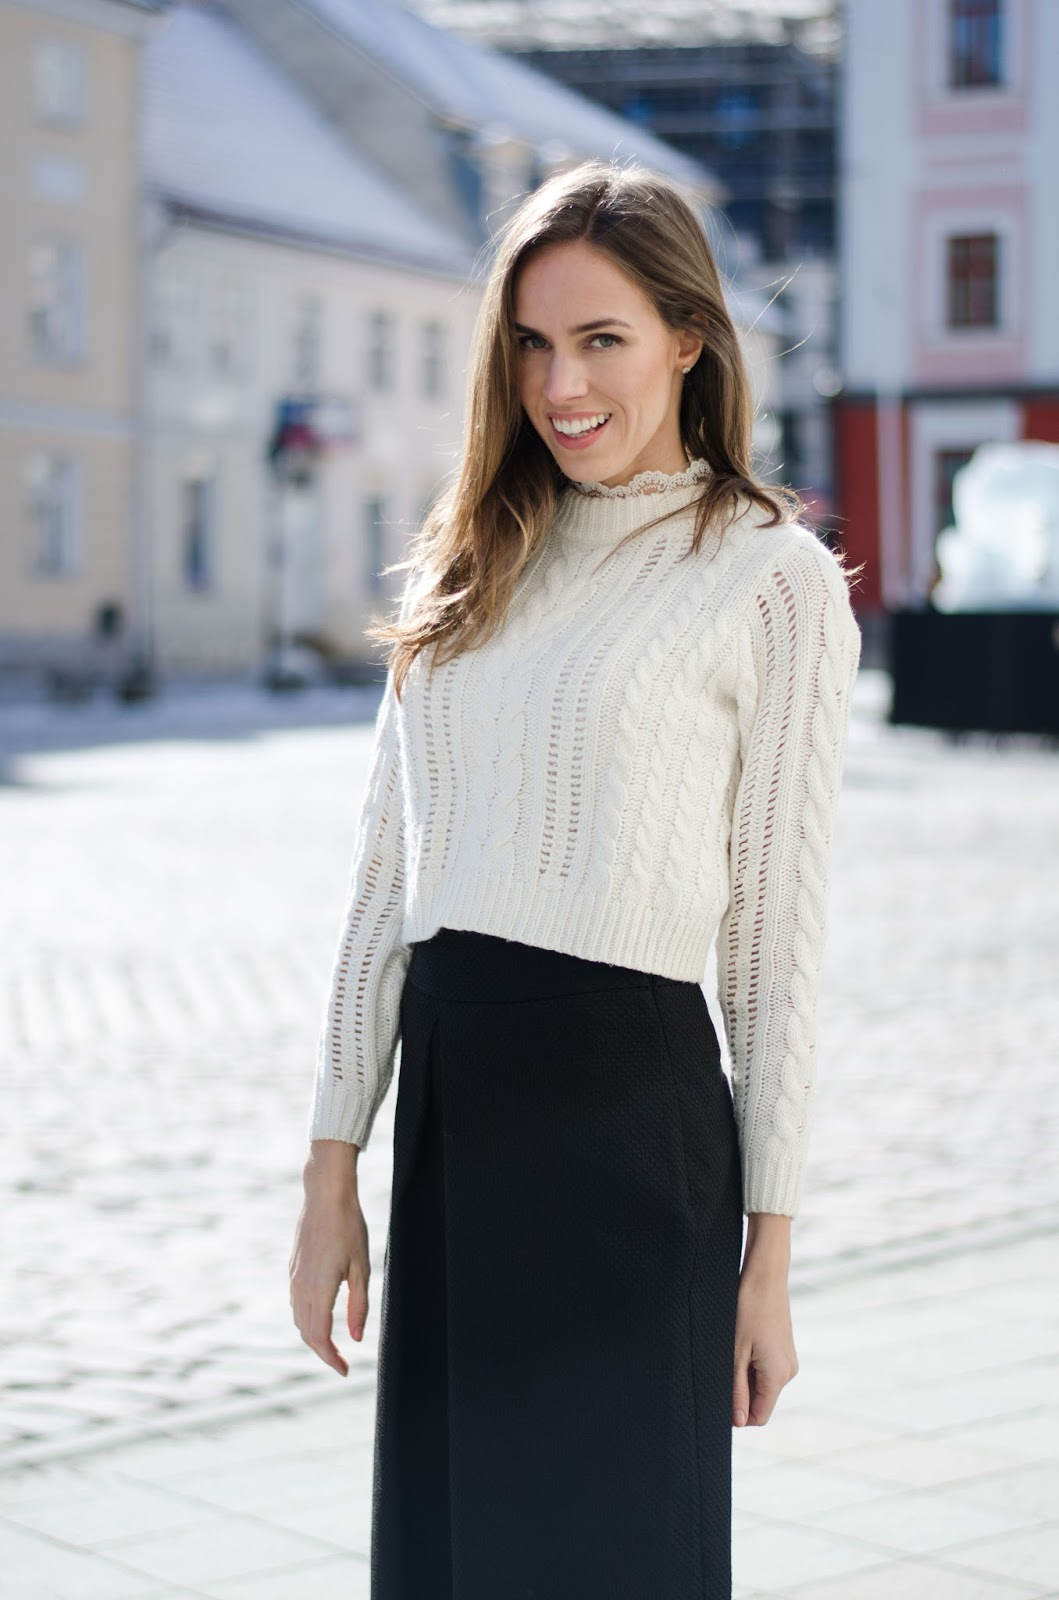 kristjaana mere white cropped sweater black trousers